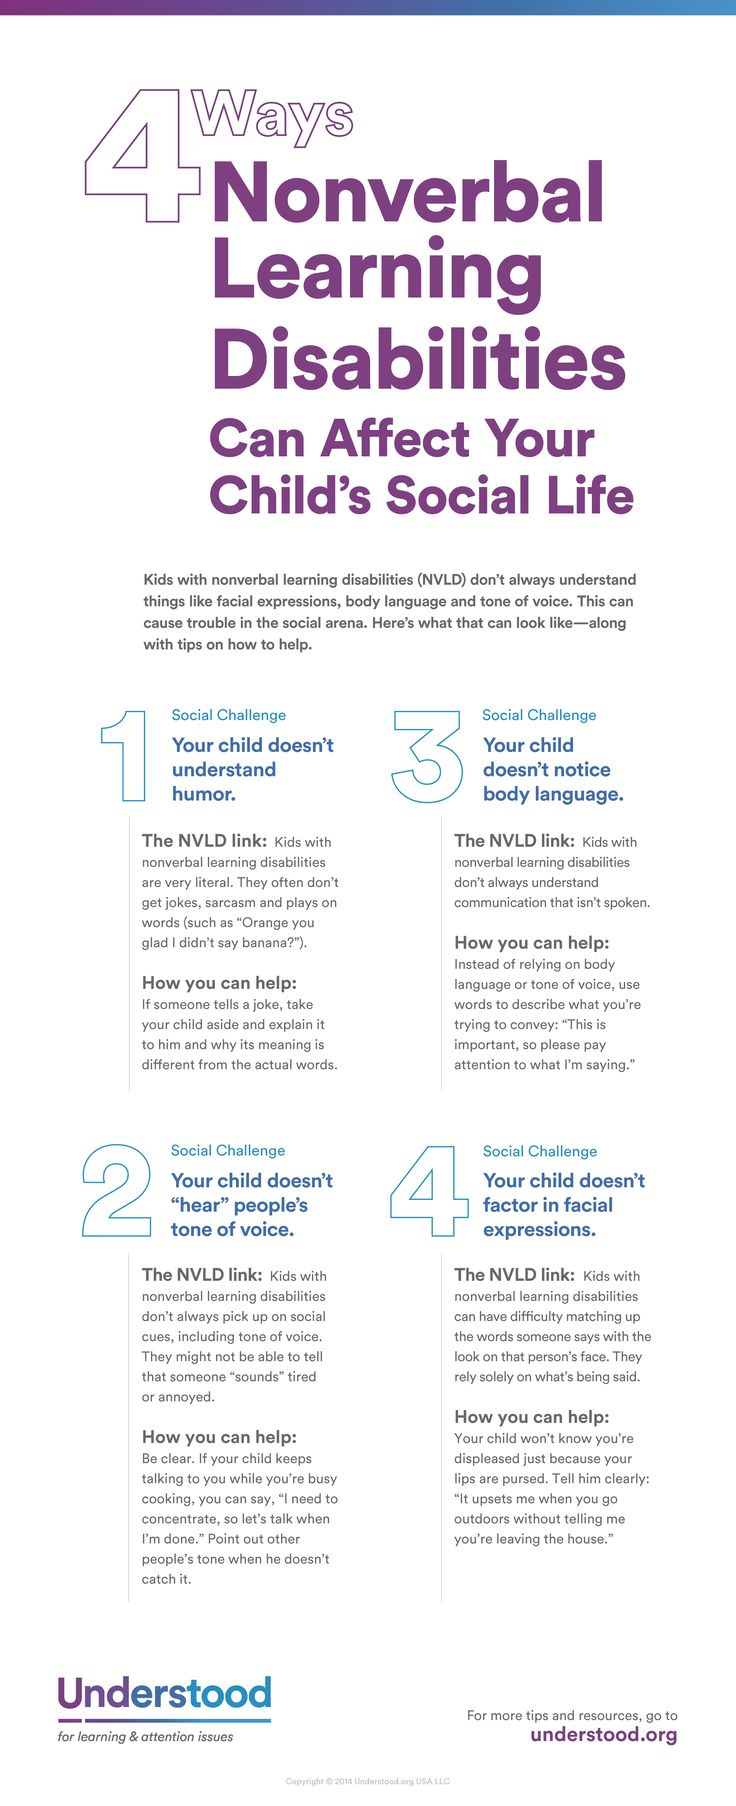 Kids withnonverbal learning disabilities(NVLD) don't always understand facial expressions and body language. They also have trouble understanding changes in tone of voice. Here are some common social challenges caused bynonverbal learning disabilities.